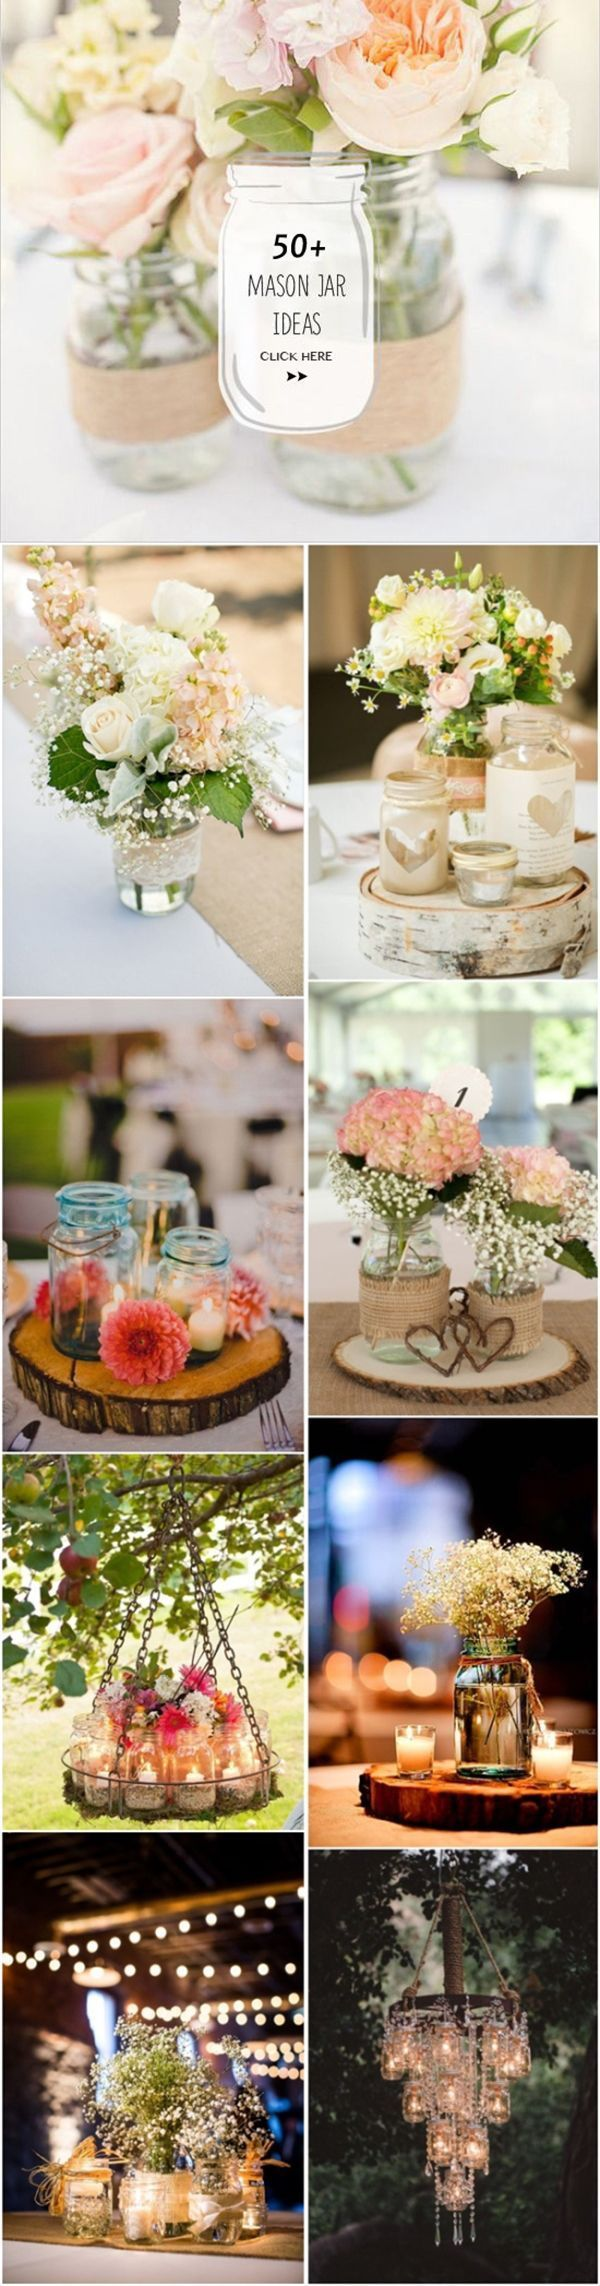 pictures of wedding centerpieces using mason jars%0A     Ways To Incorporate Mason Jars Into Your Wedding